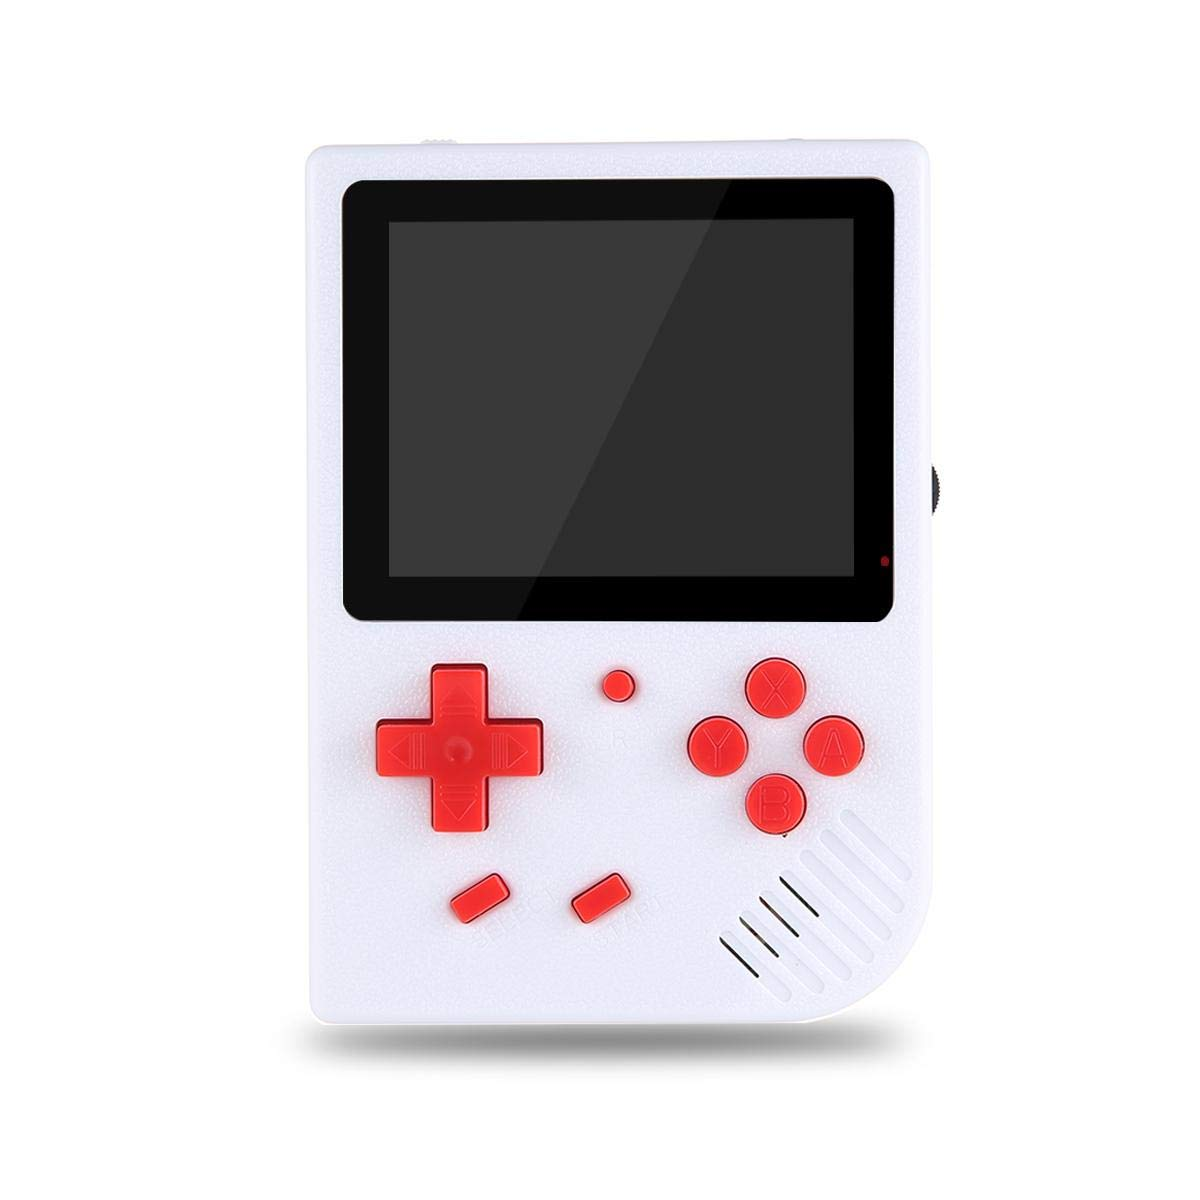 LAYOPO Retro Mini Handheld Video Game Console Gameboy Built-in 600 Classic Games Gift by LAYOPO (Image #8)